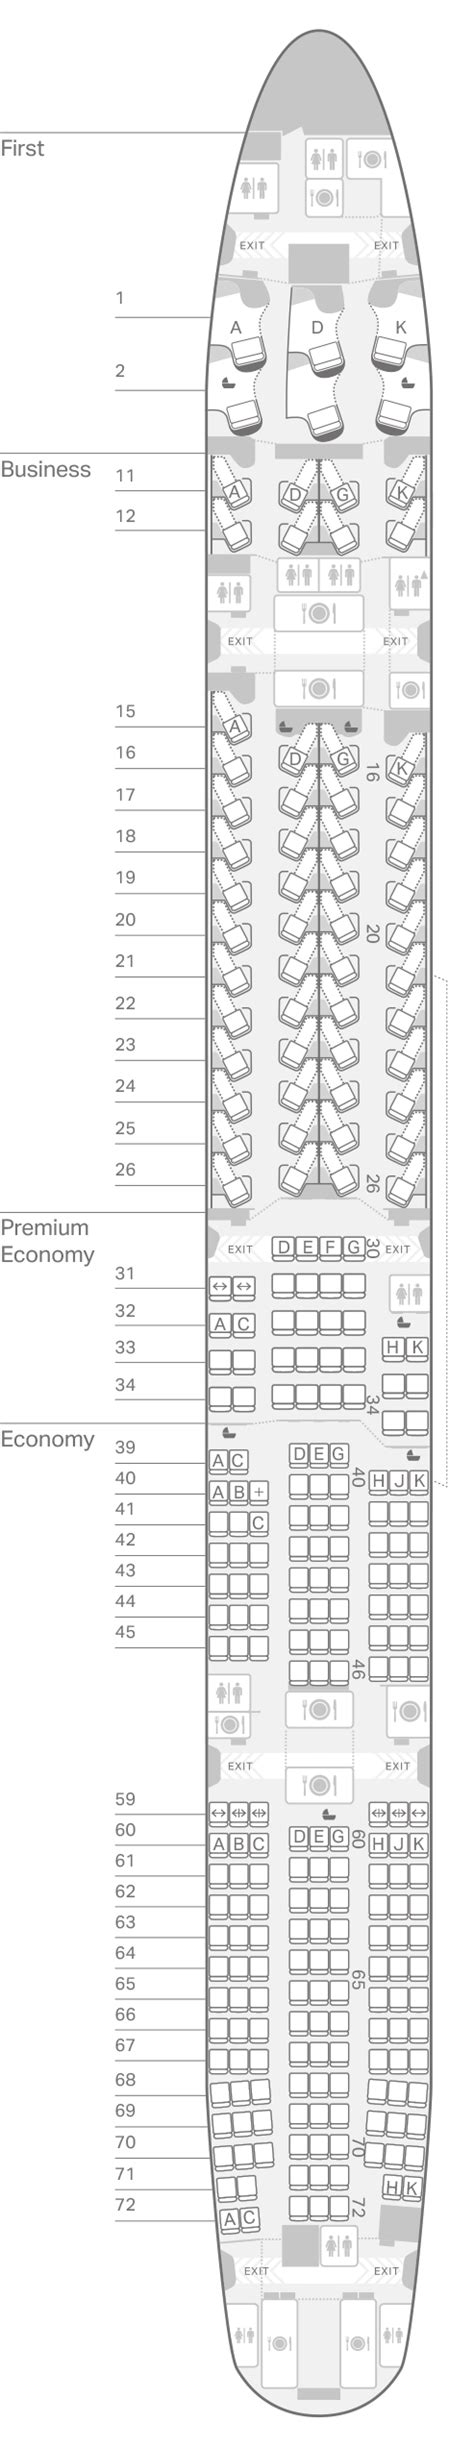 Cathay Pacific Airplane Seating Chart 77w   www